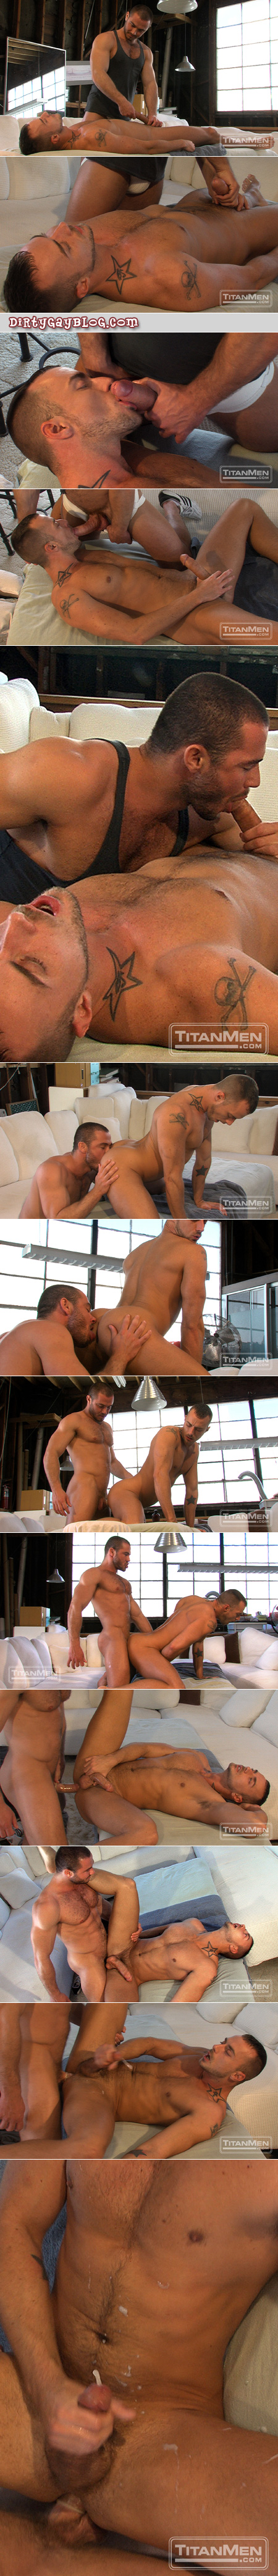 Male massage therapist in a jockstrap takes advantage of his men clients.